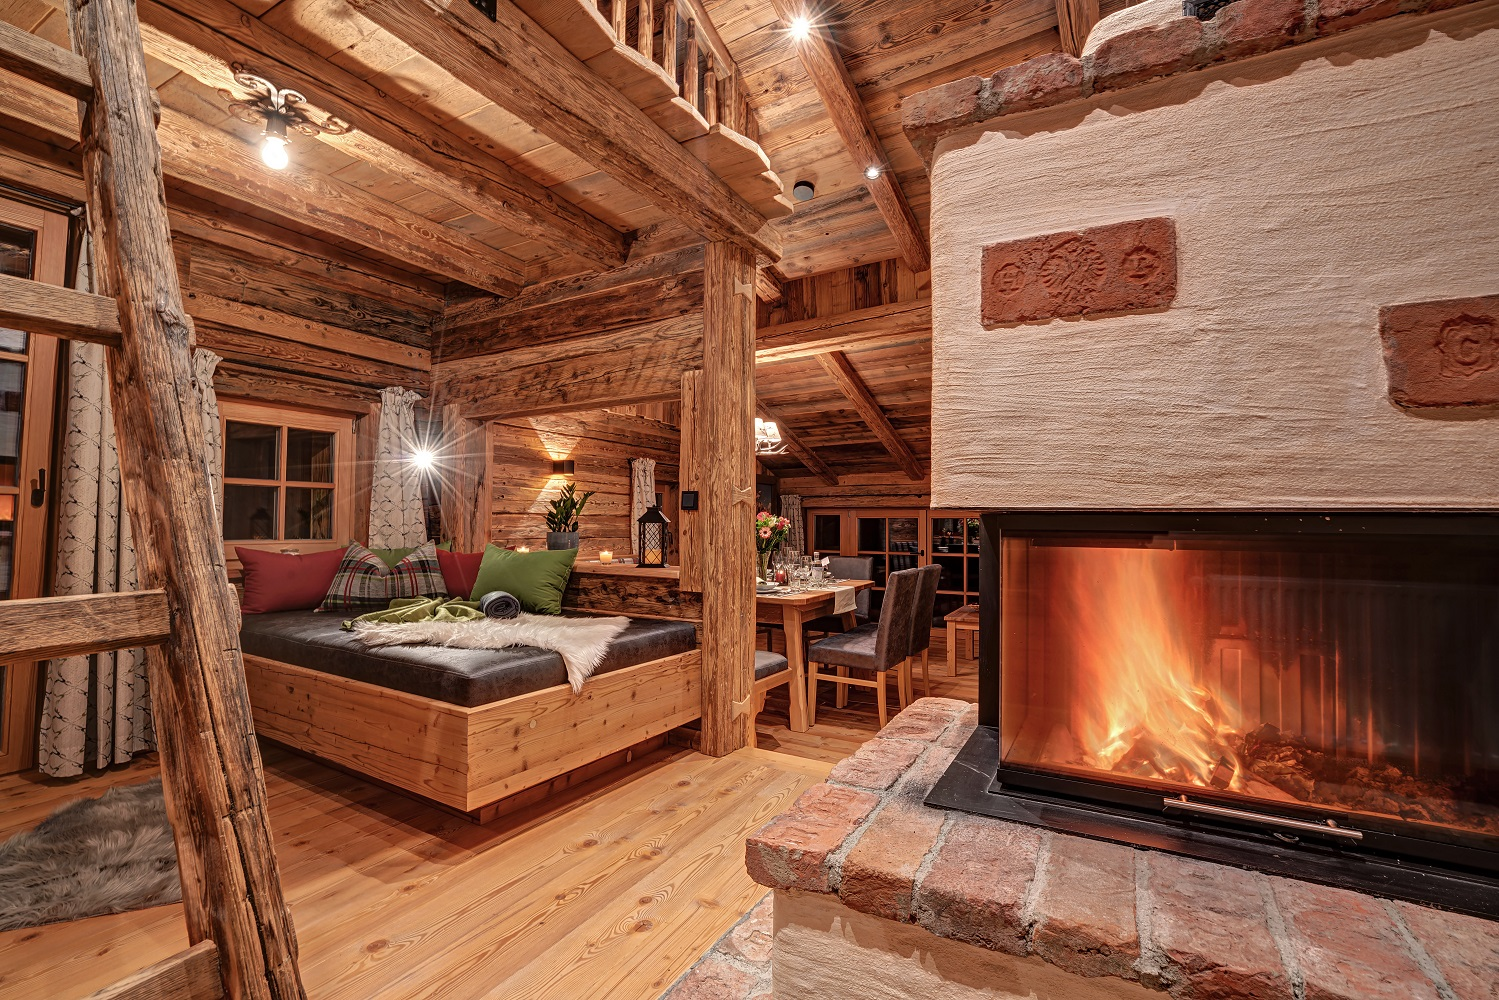 Highking_Chalet_Grünegg_4